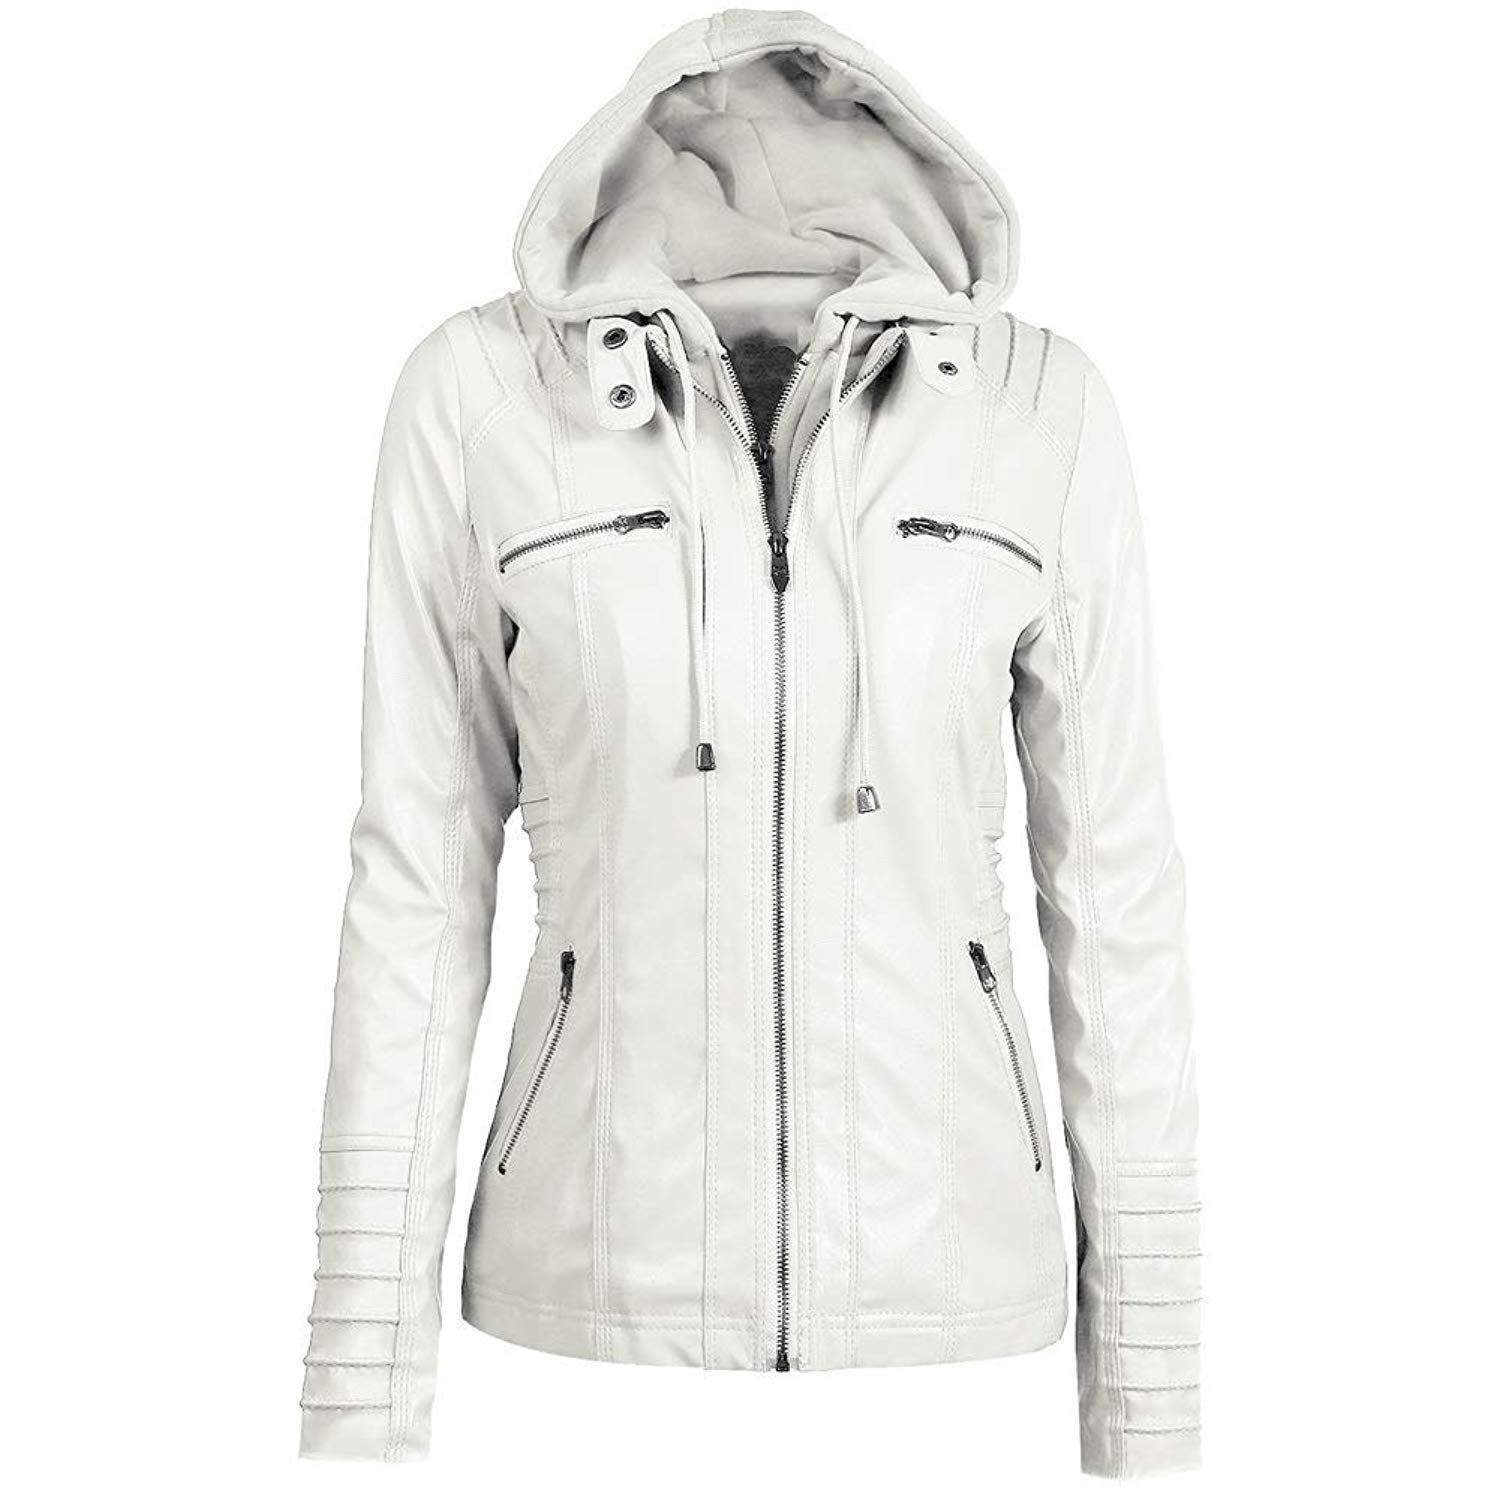 50486cae75d22 Get Quotations · Zuozee Womens Hoodie Jacket with Zip up Milttary Anorak  Slim Fit Leather Jacket 7XL